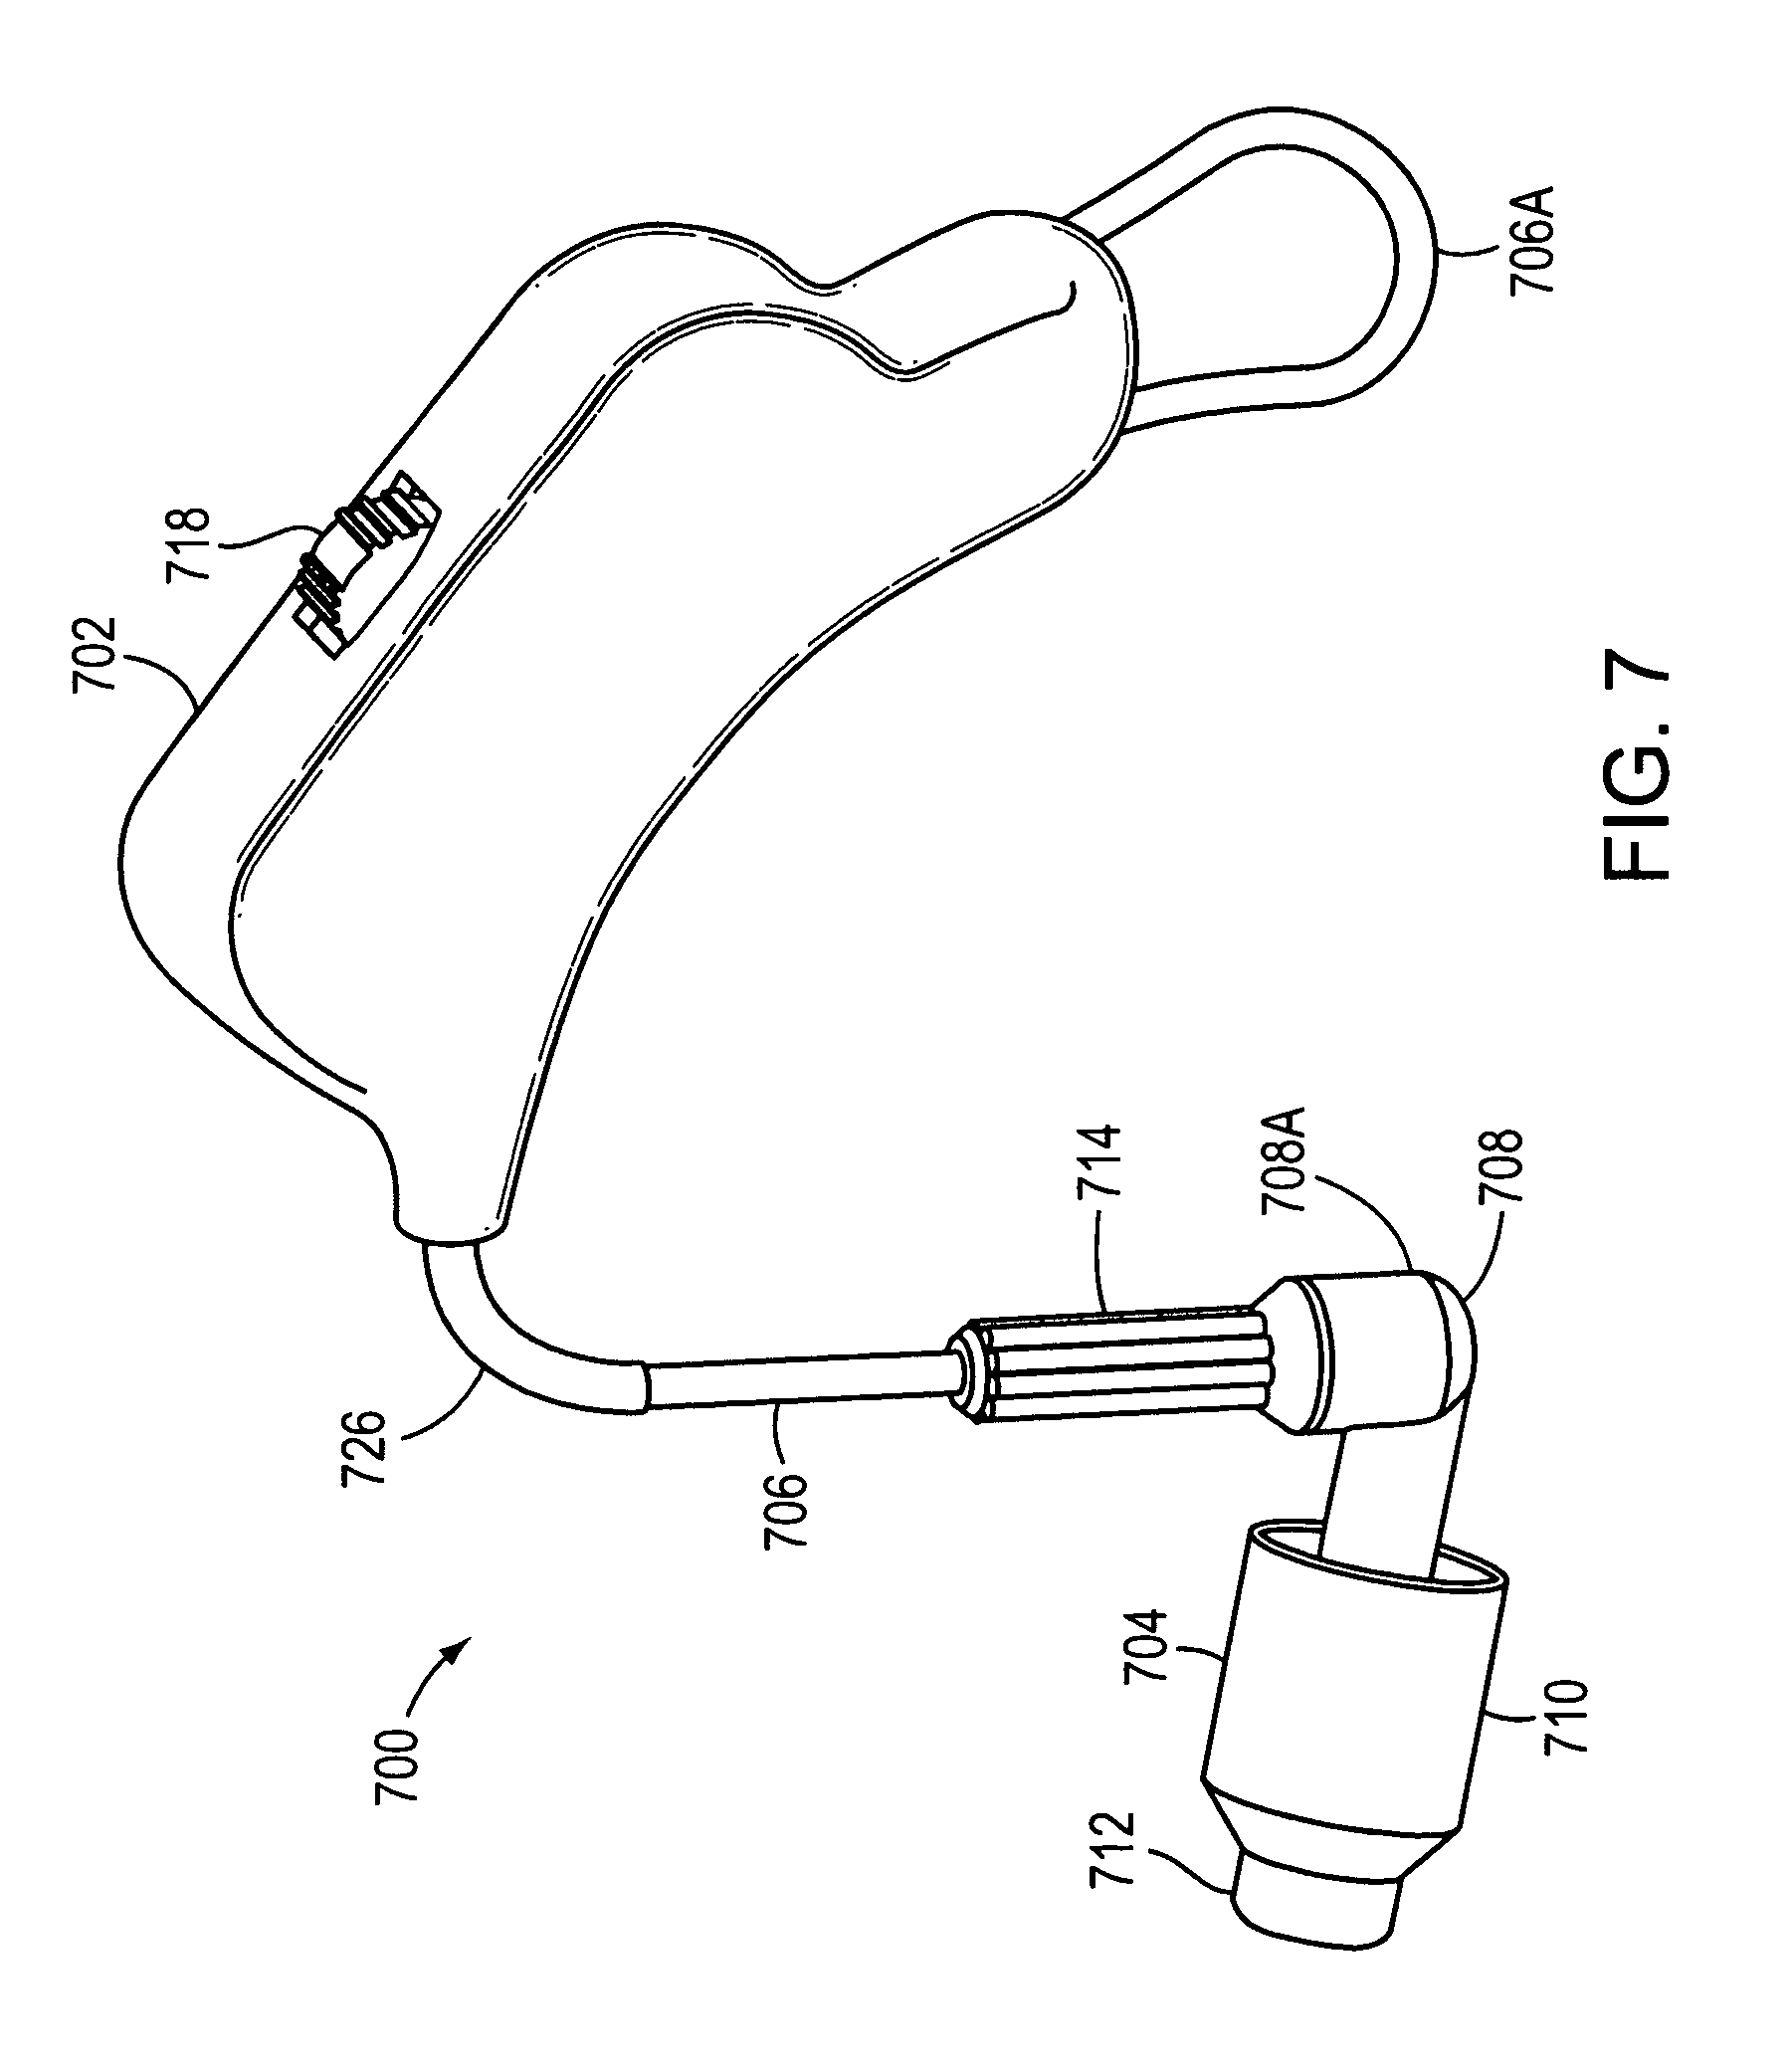 patent us8121320 - hearing aid